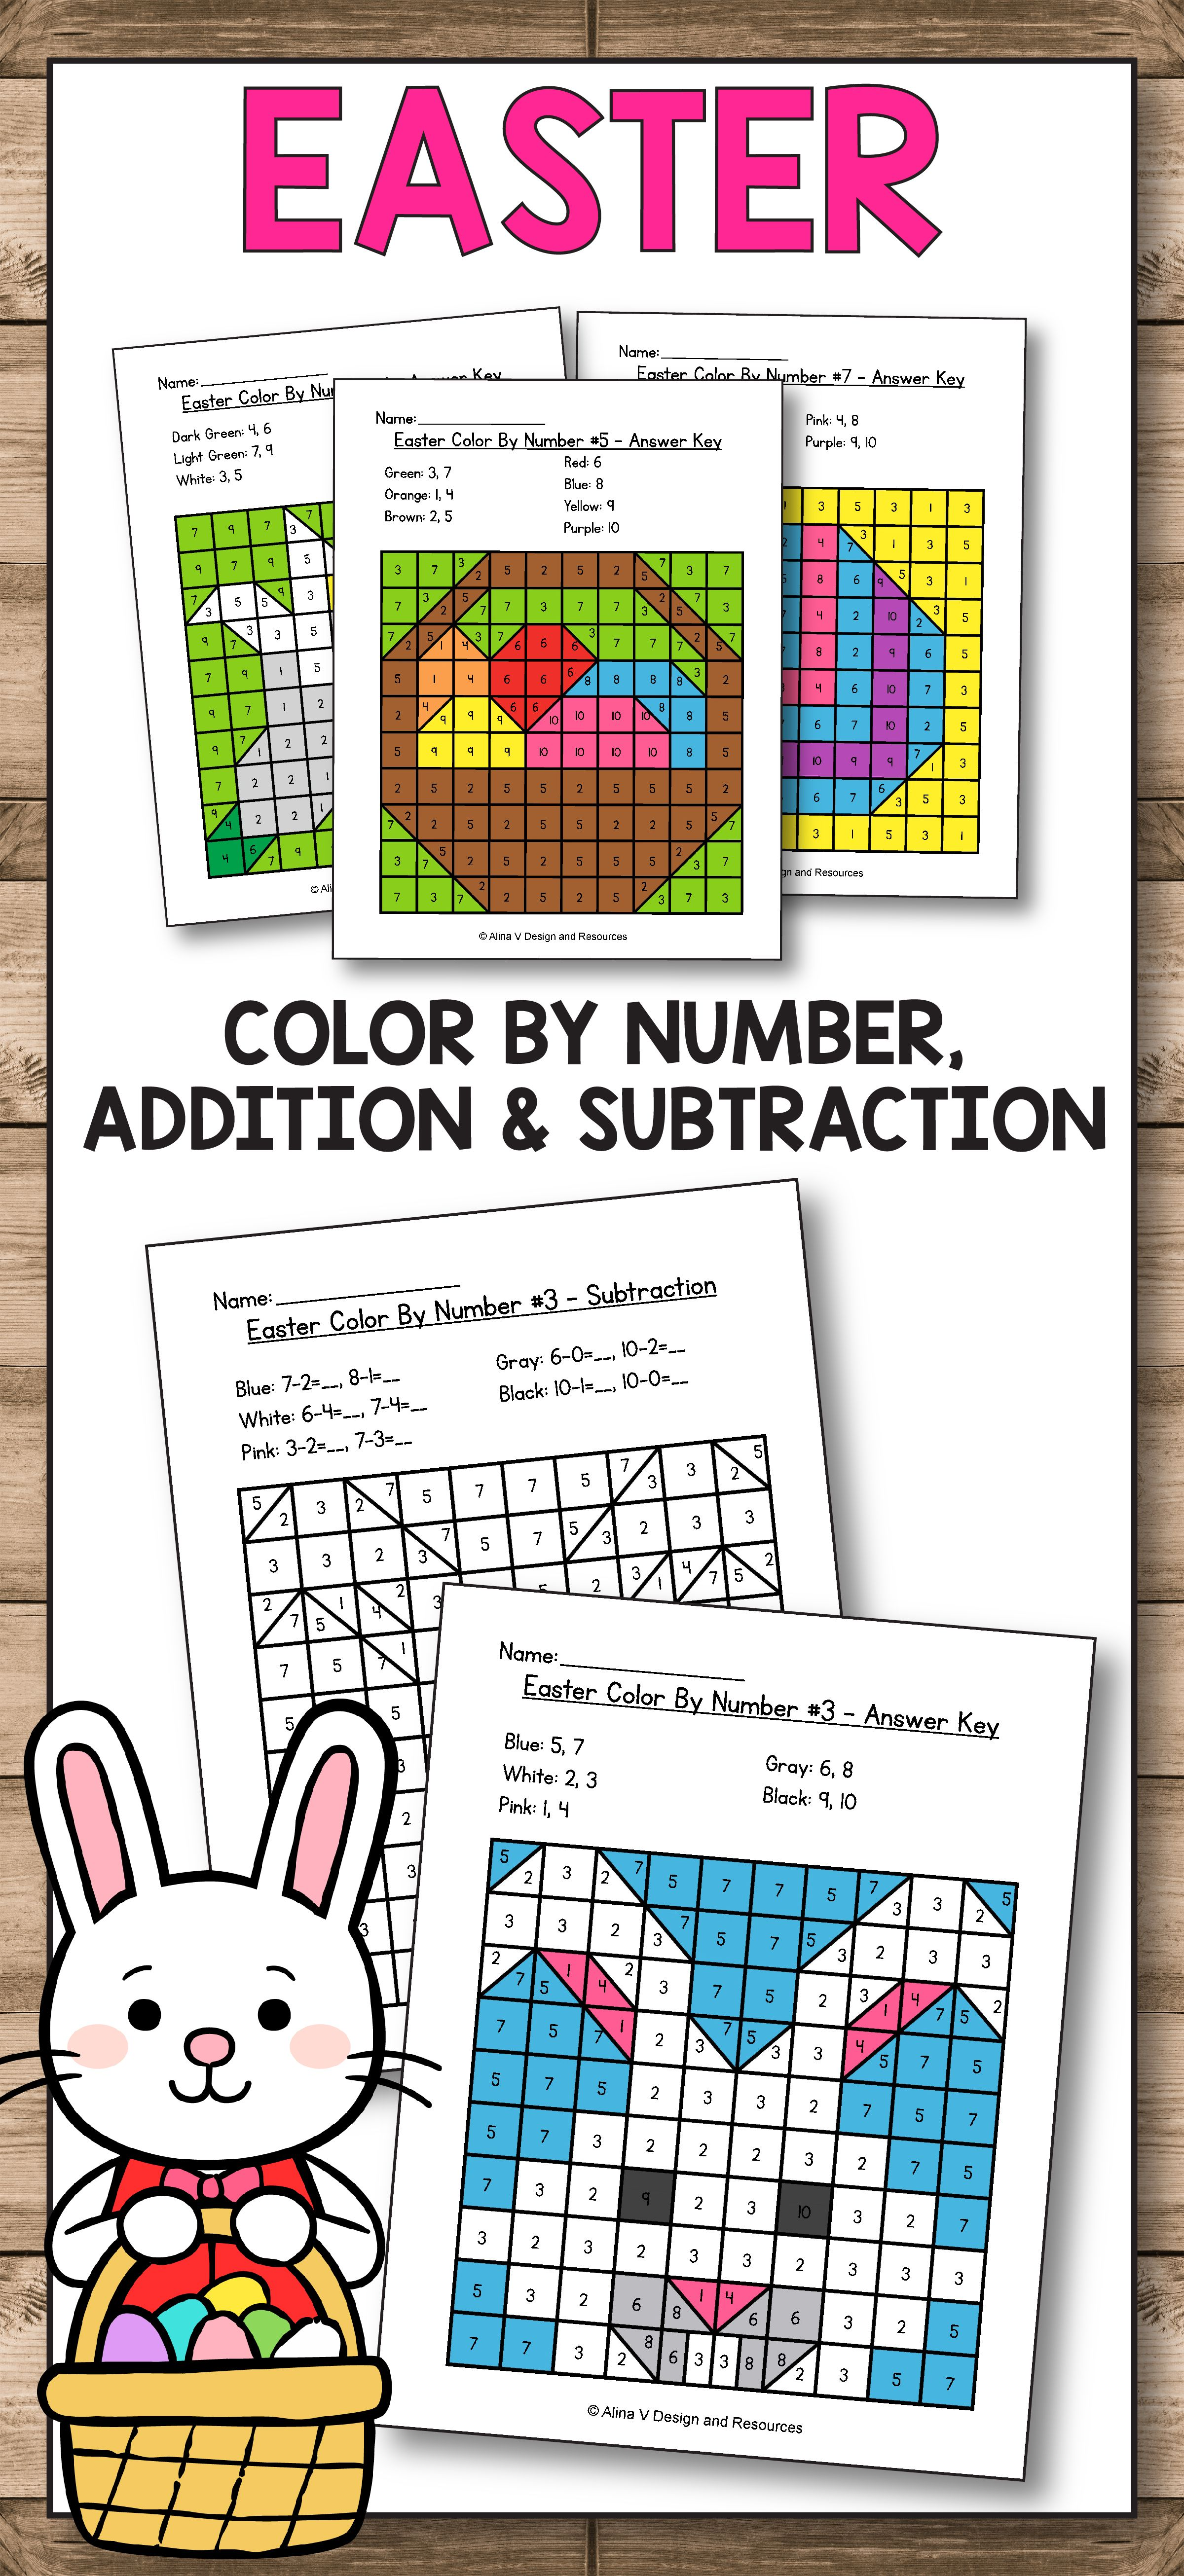 Easter Activities for Kindergarten - Easter Math Worksheets | Early ...